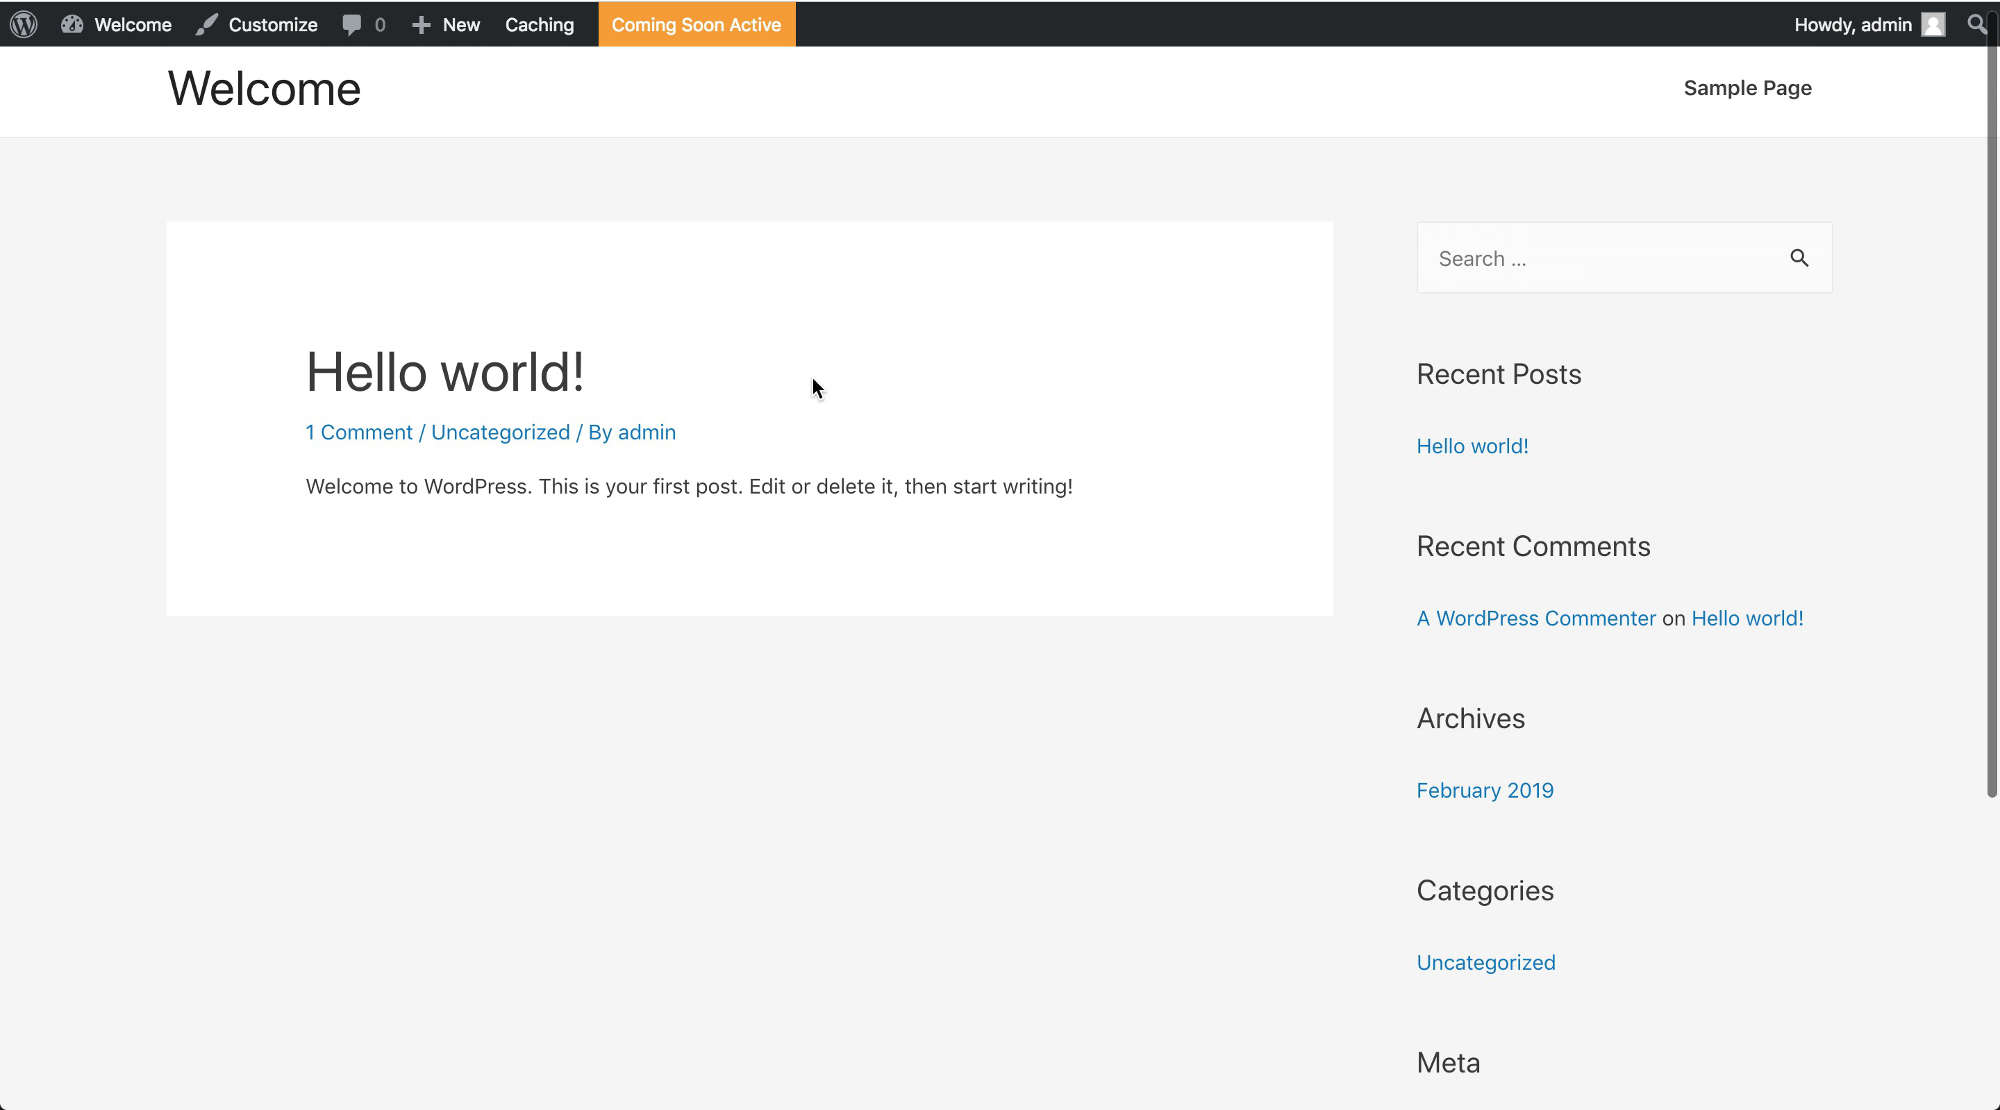 The default look and feel that comes with initial WordPress install. Not quite visually appealing right!